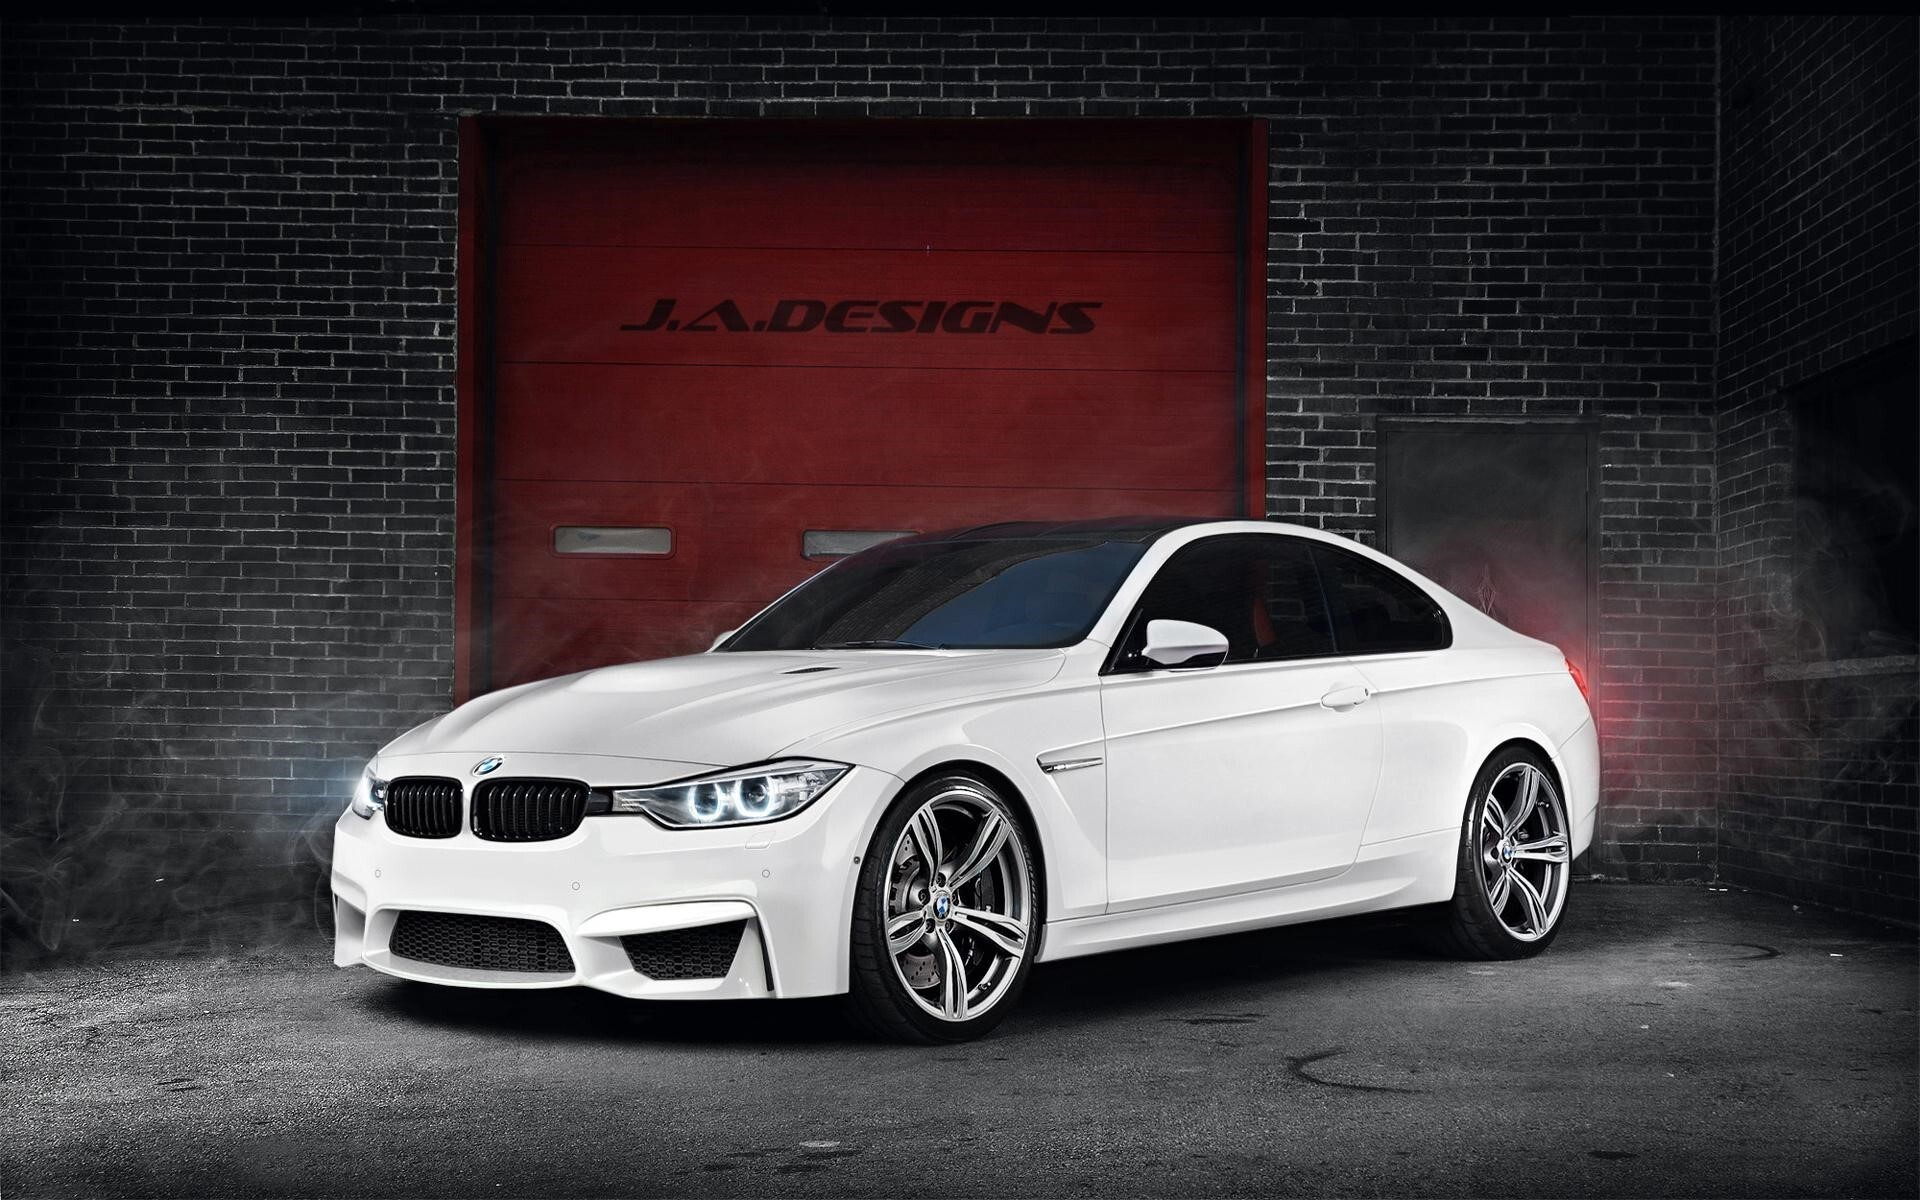 New BMW M3 White Car Free Wallpapers Download   HD Wallpapers